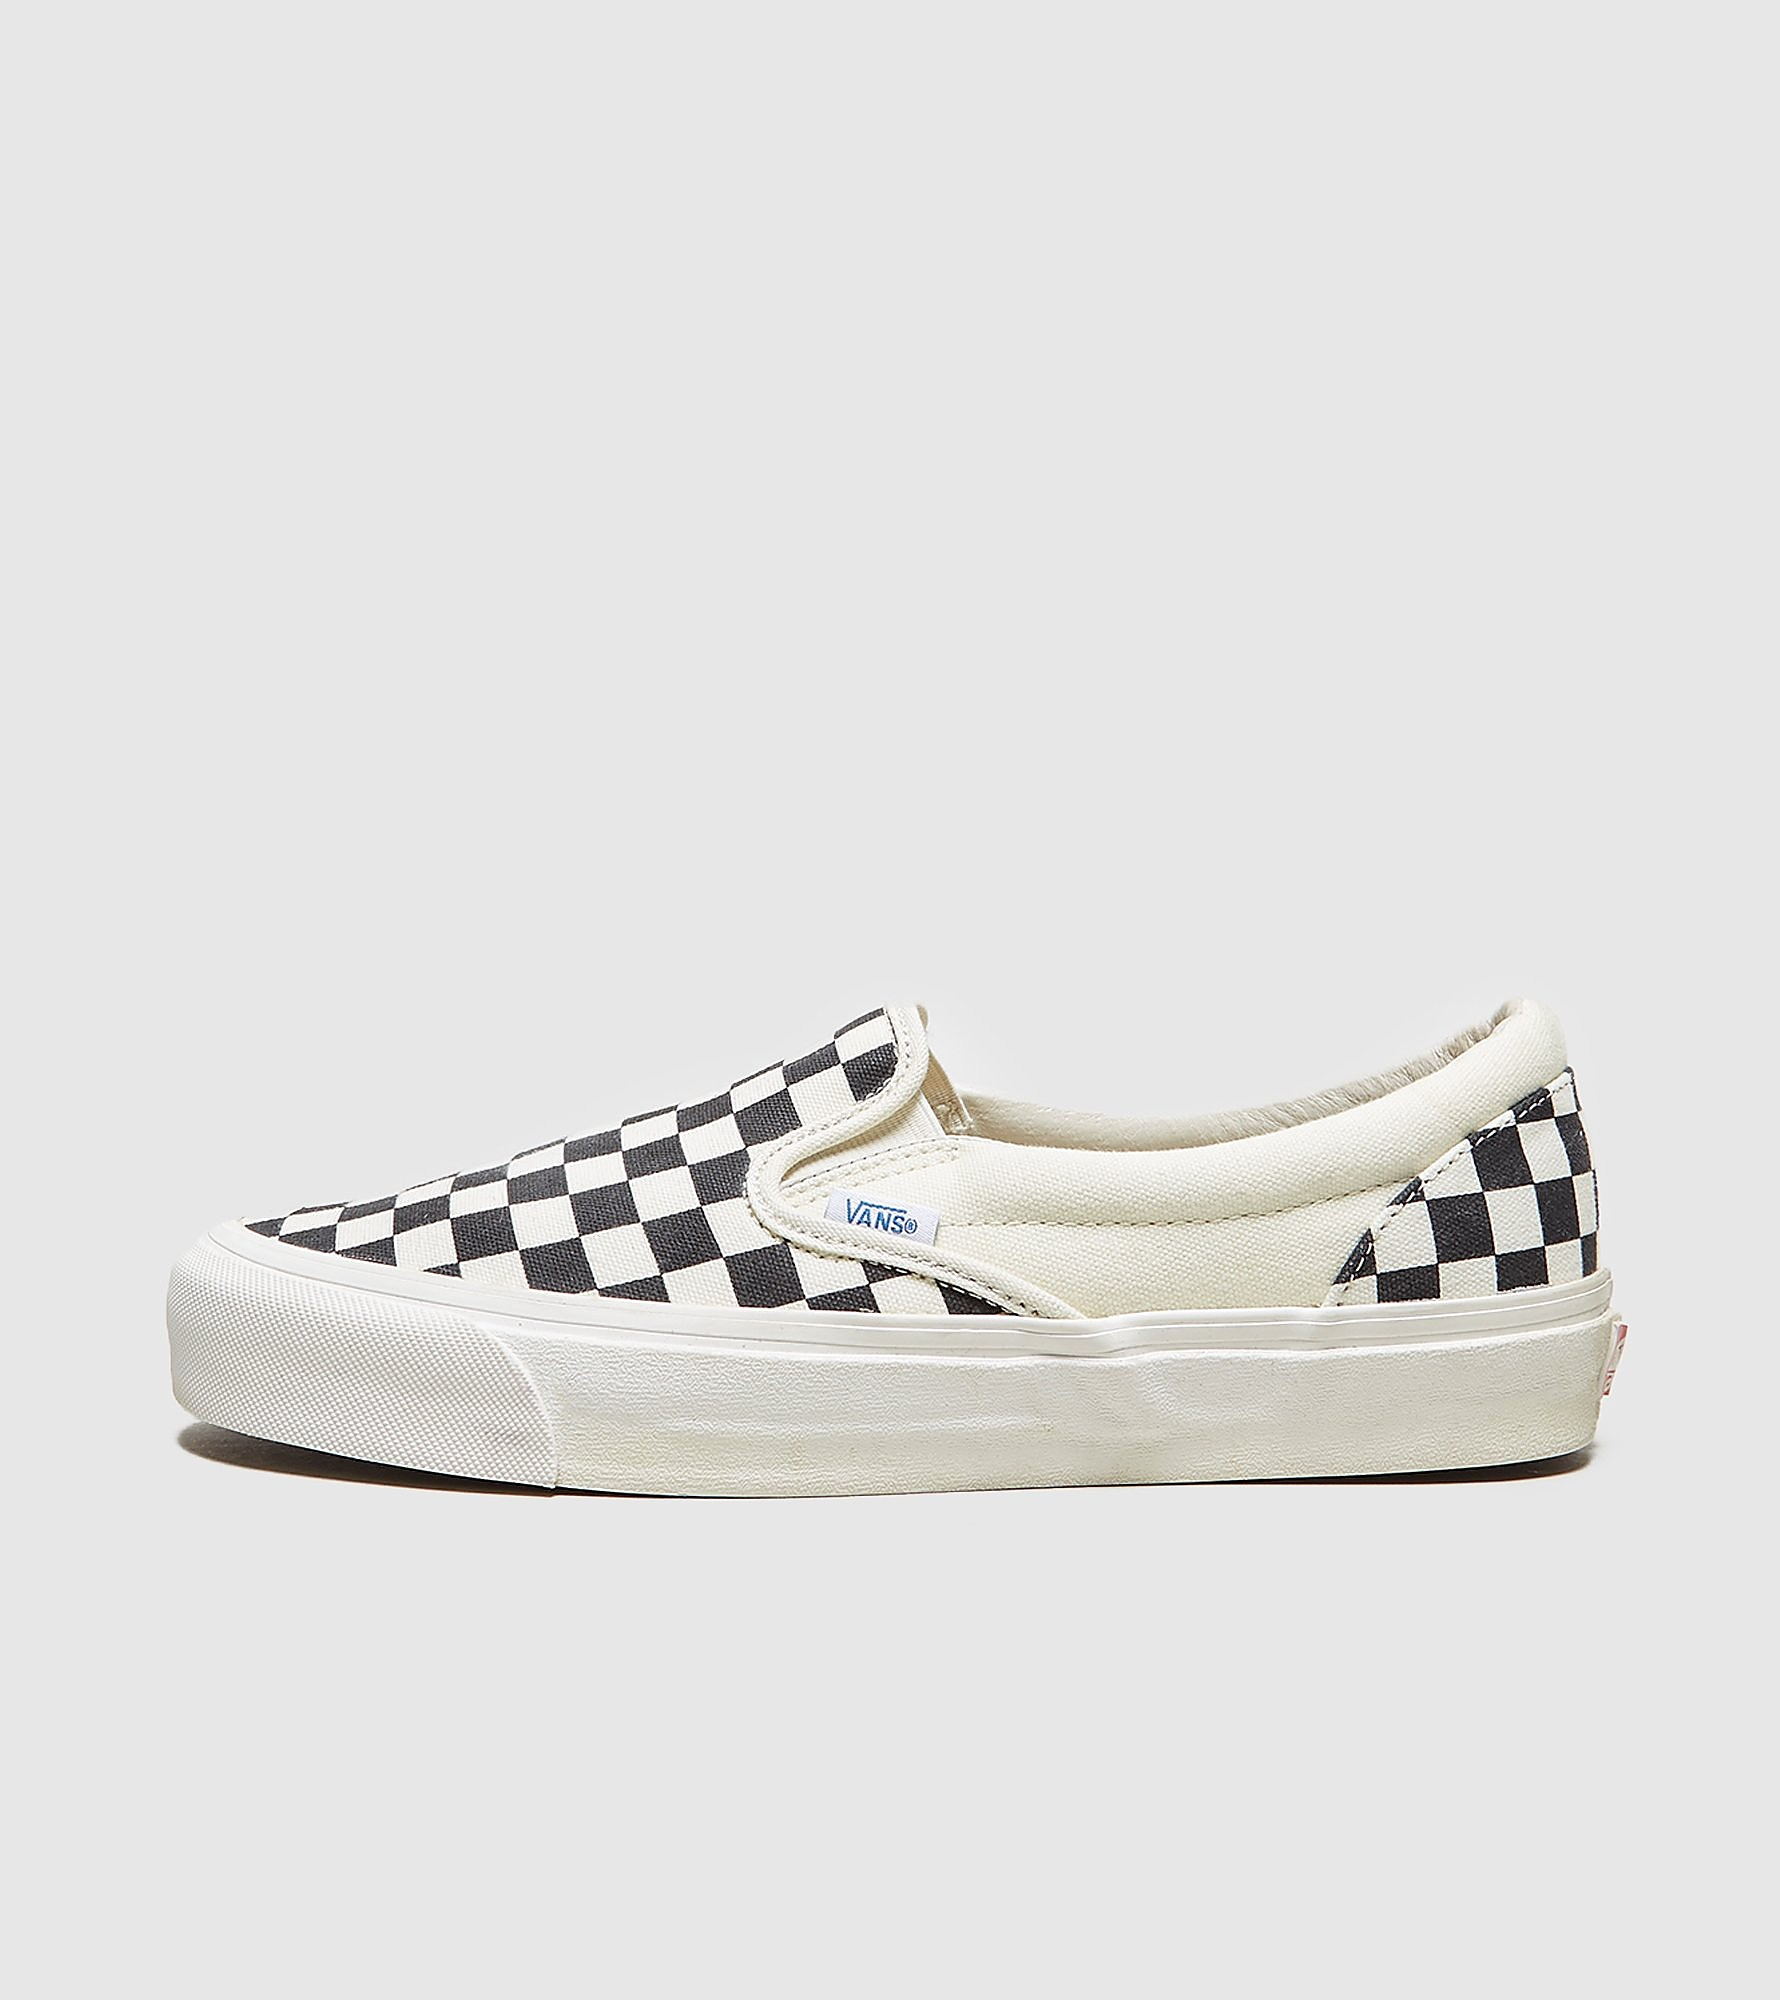 Vans Slip On OG Checkerboard